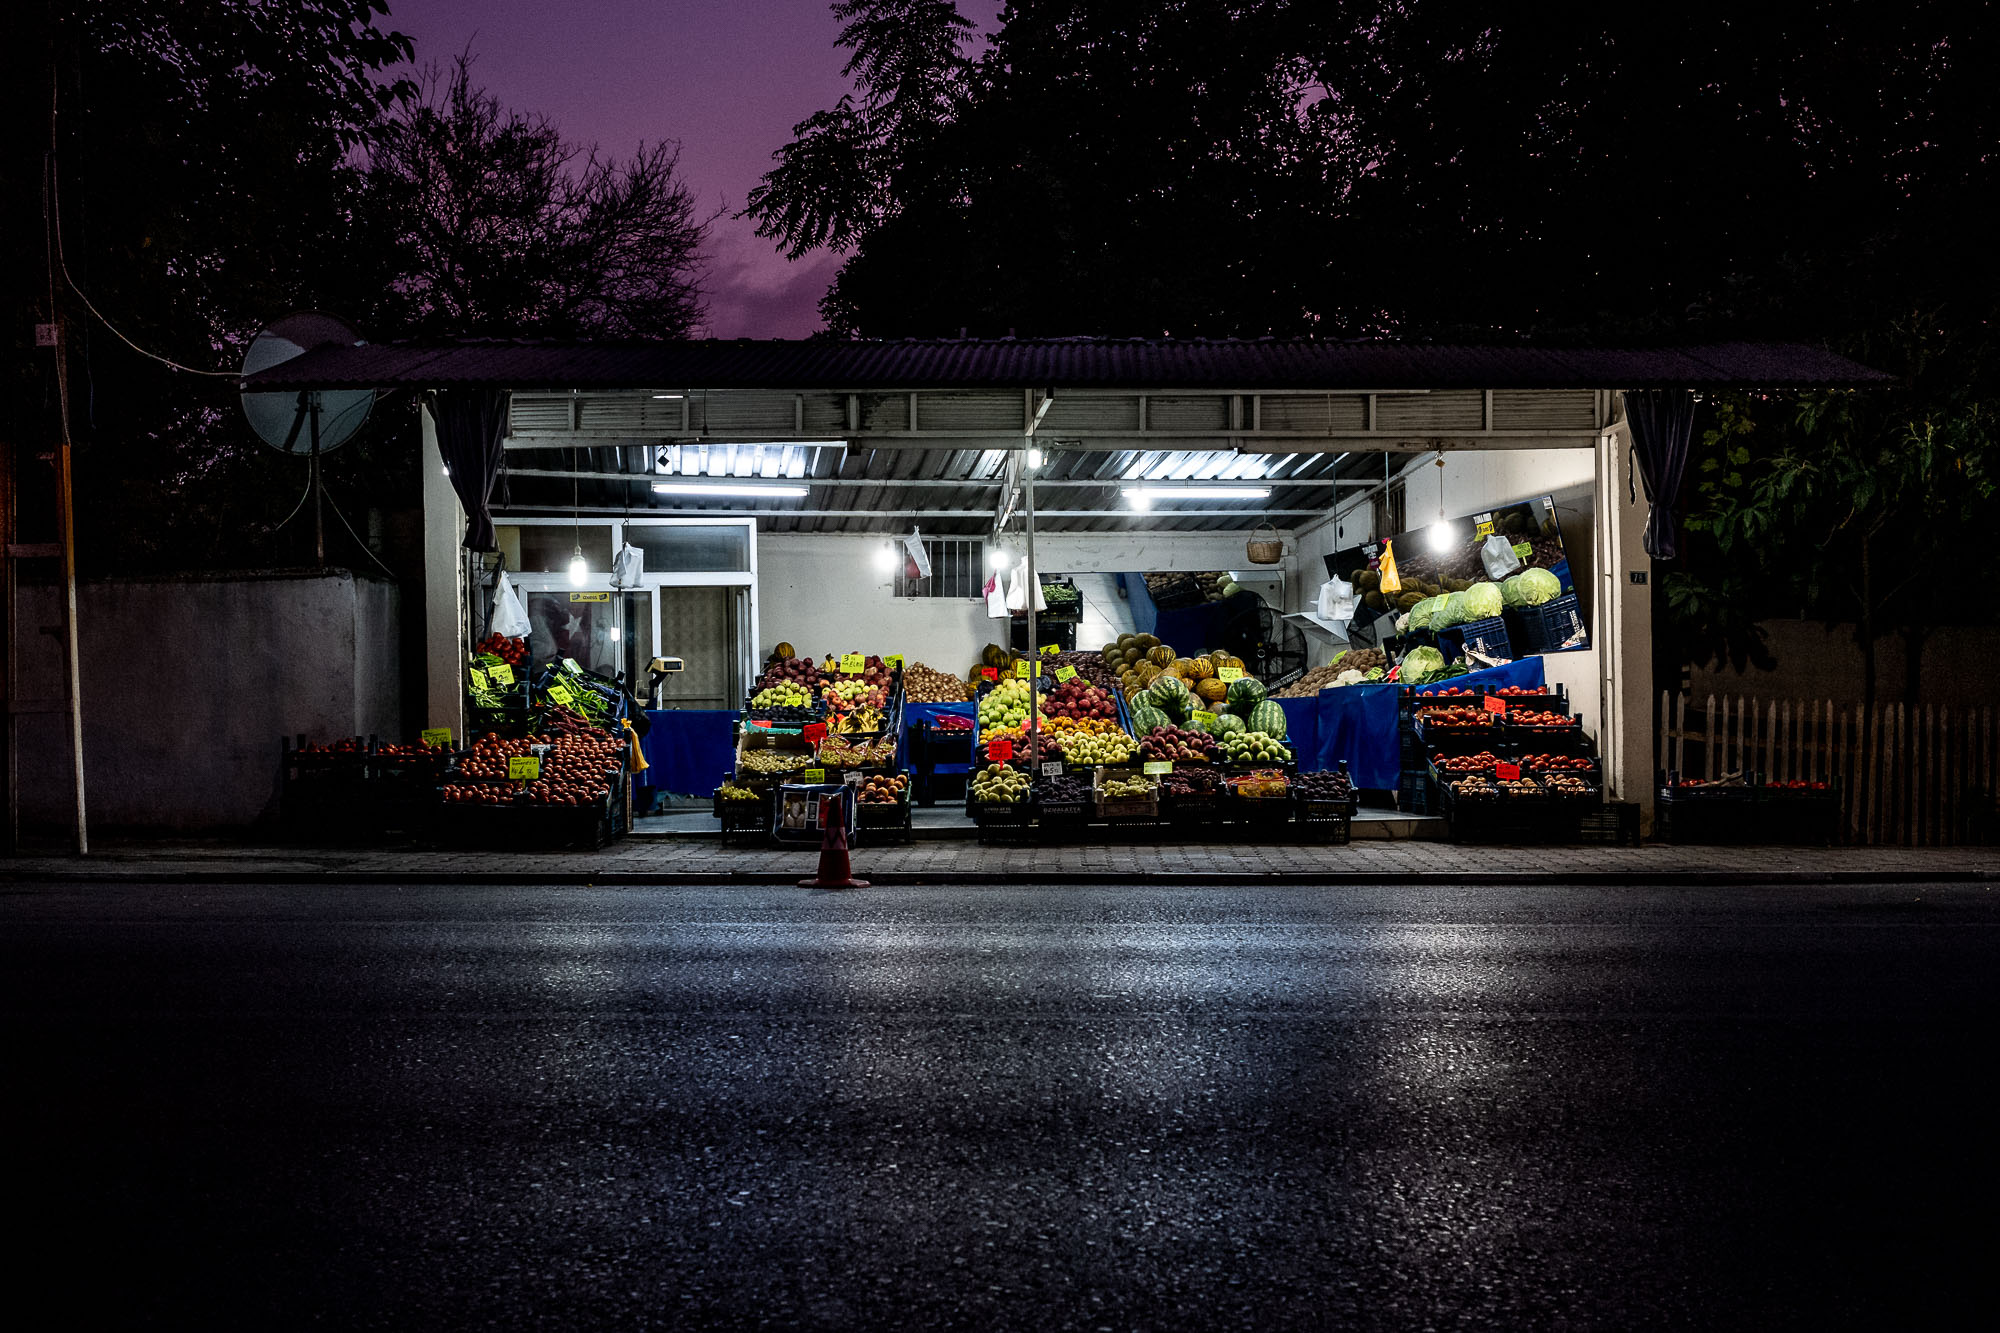 Fruit vendor at nightfall, with fluorescent lights illuminating the produce